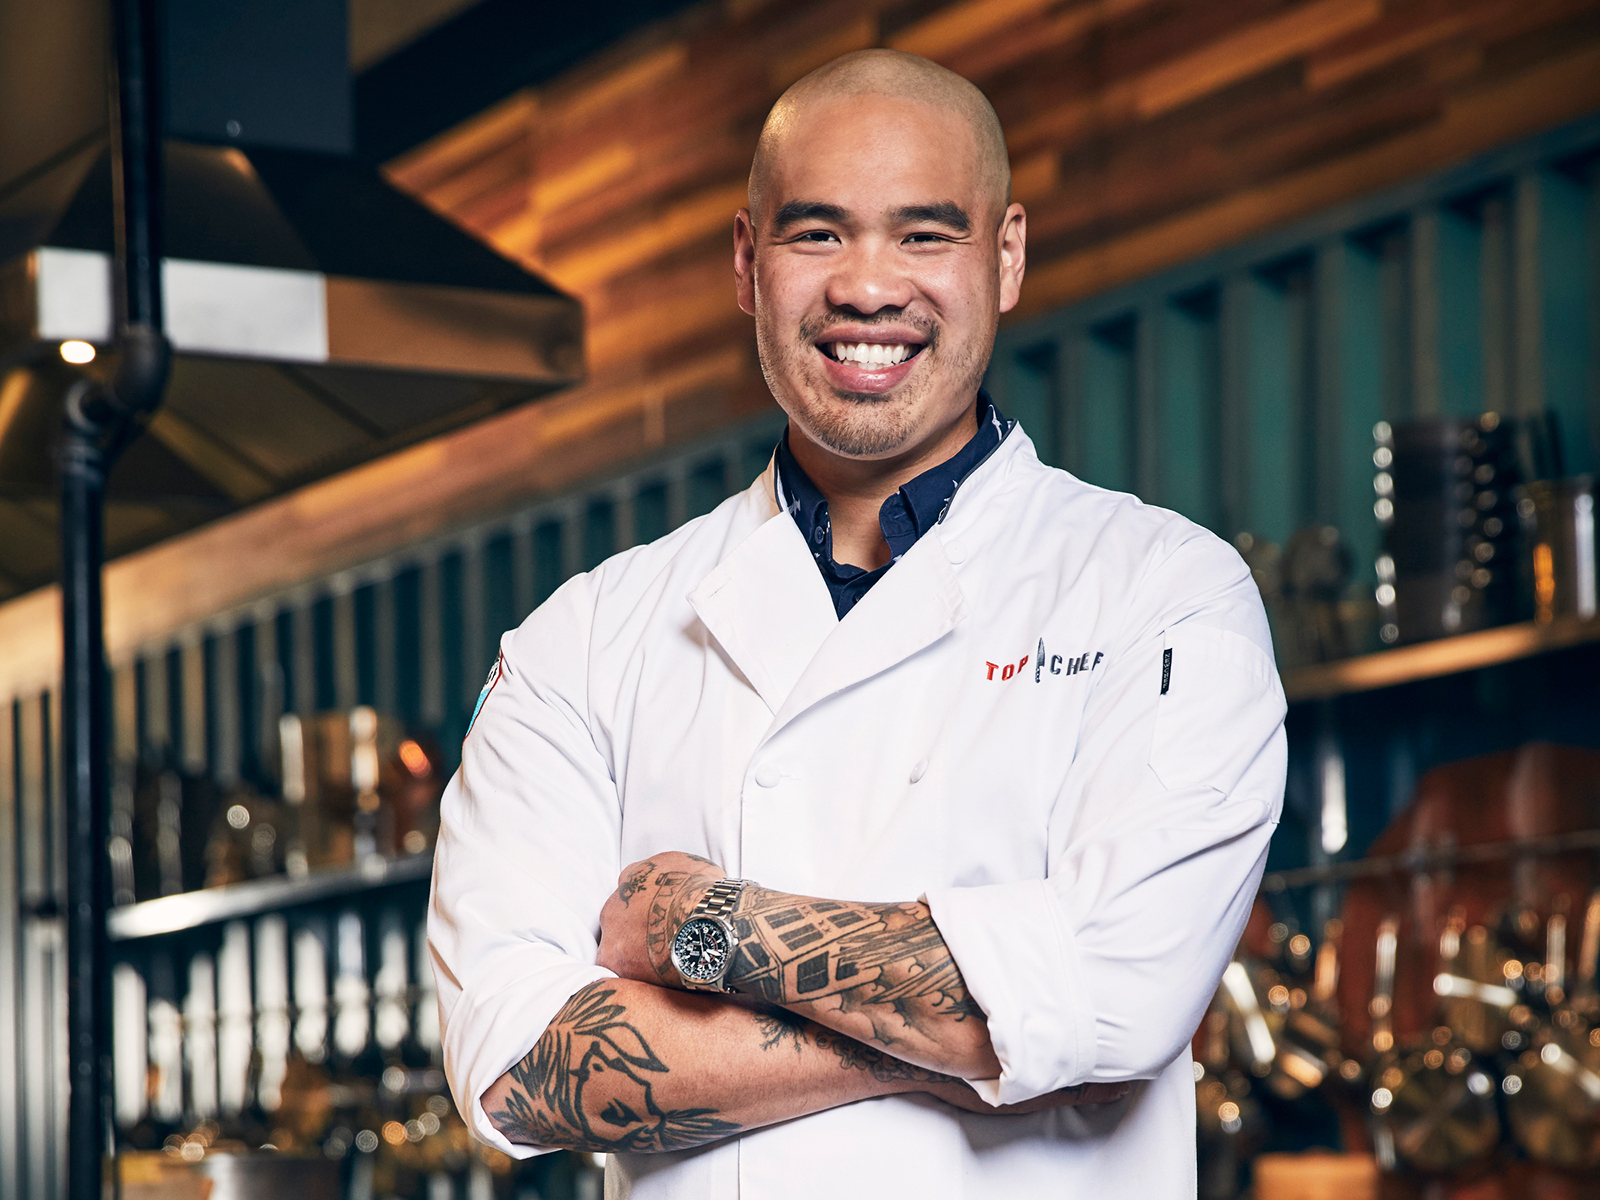 'Top Chef's' Tu David Phu on Going Against the Grain